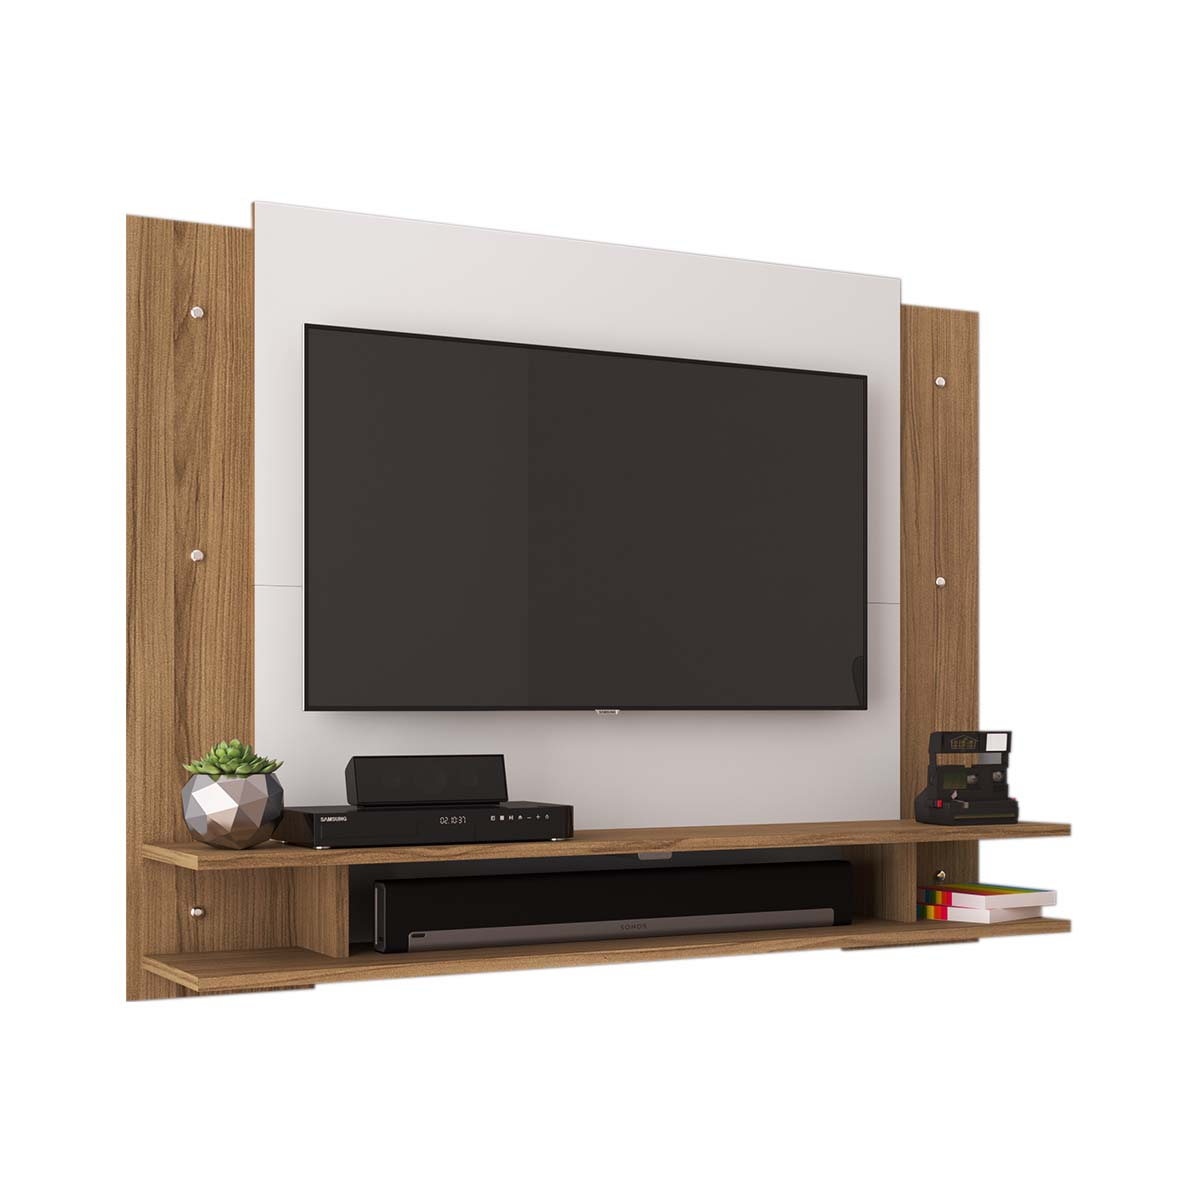 Mueble Modular TV Con Paneles + Repisas Natural con Blanco